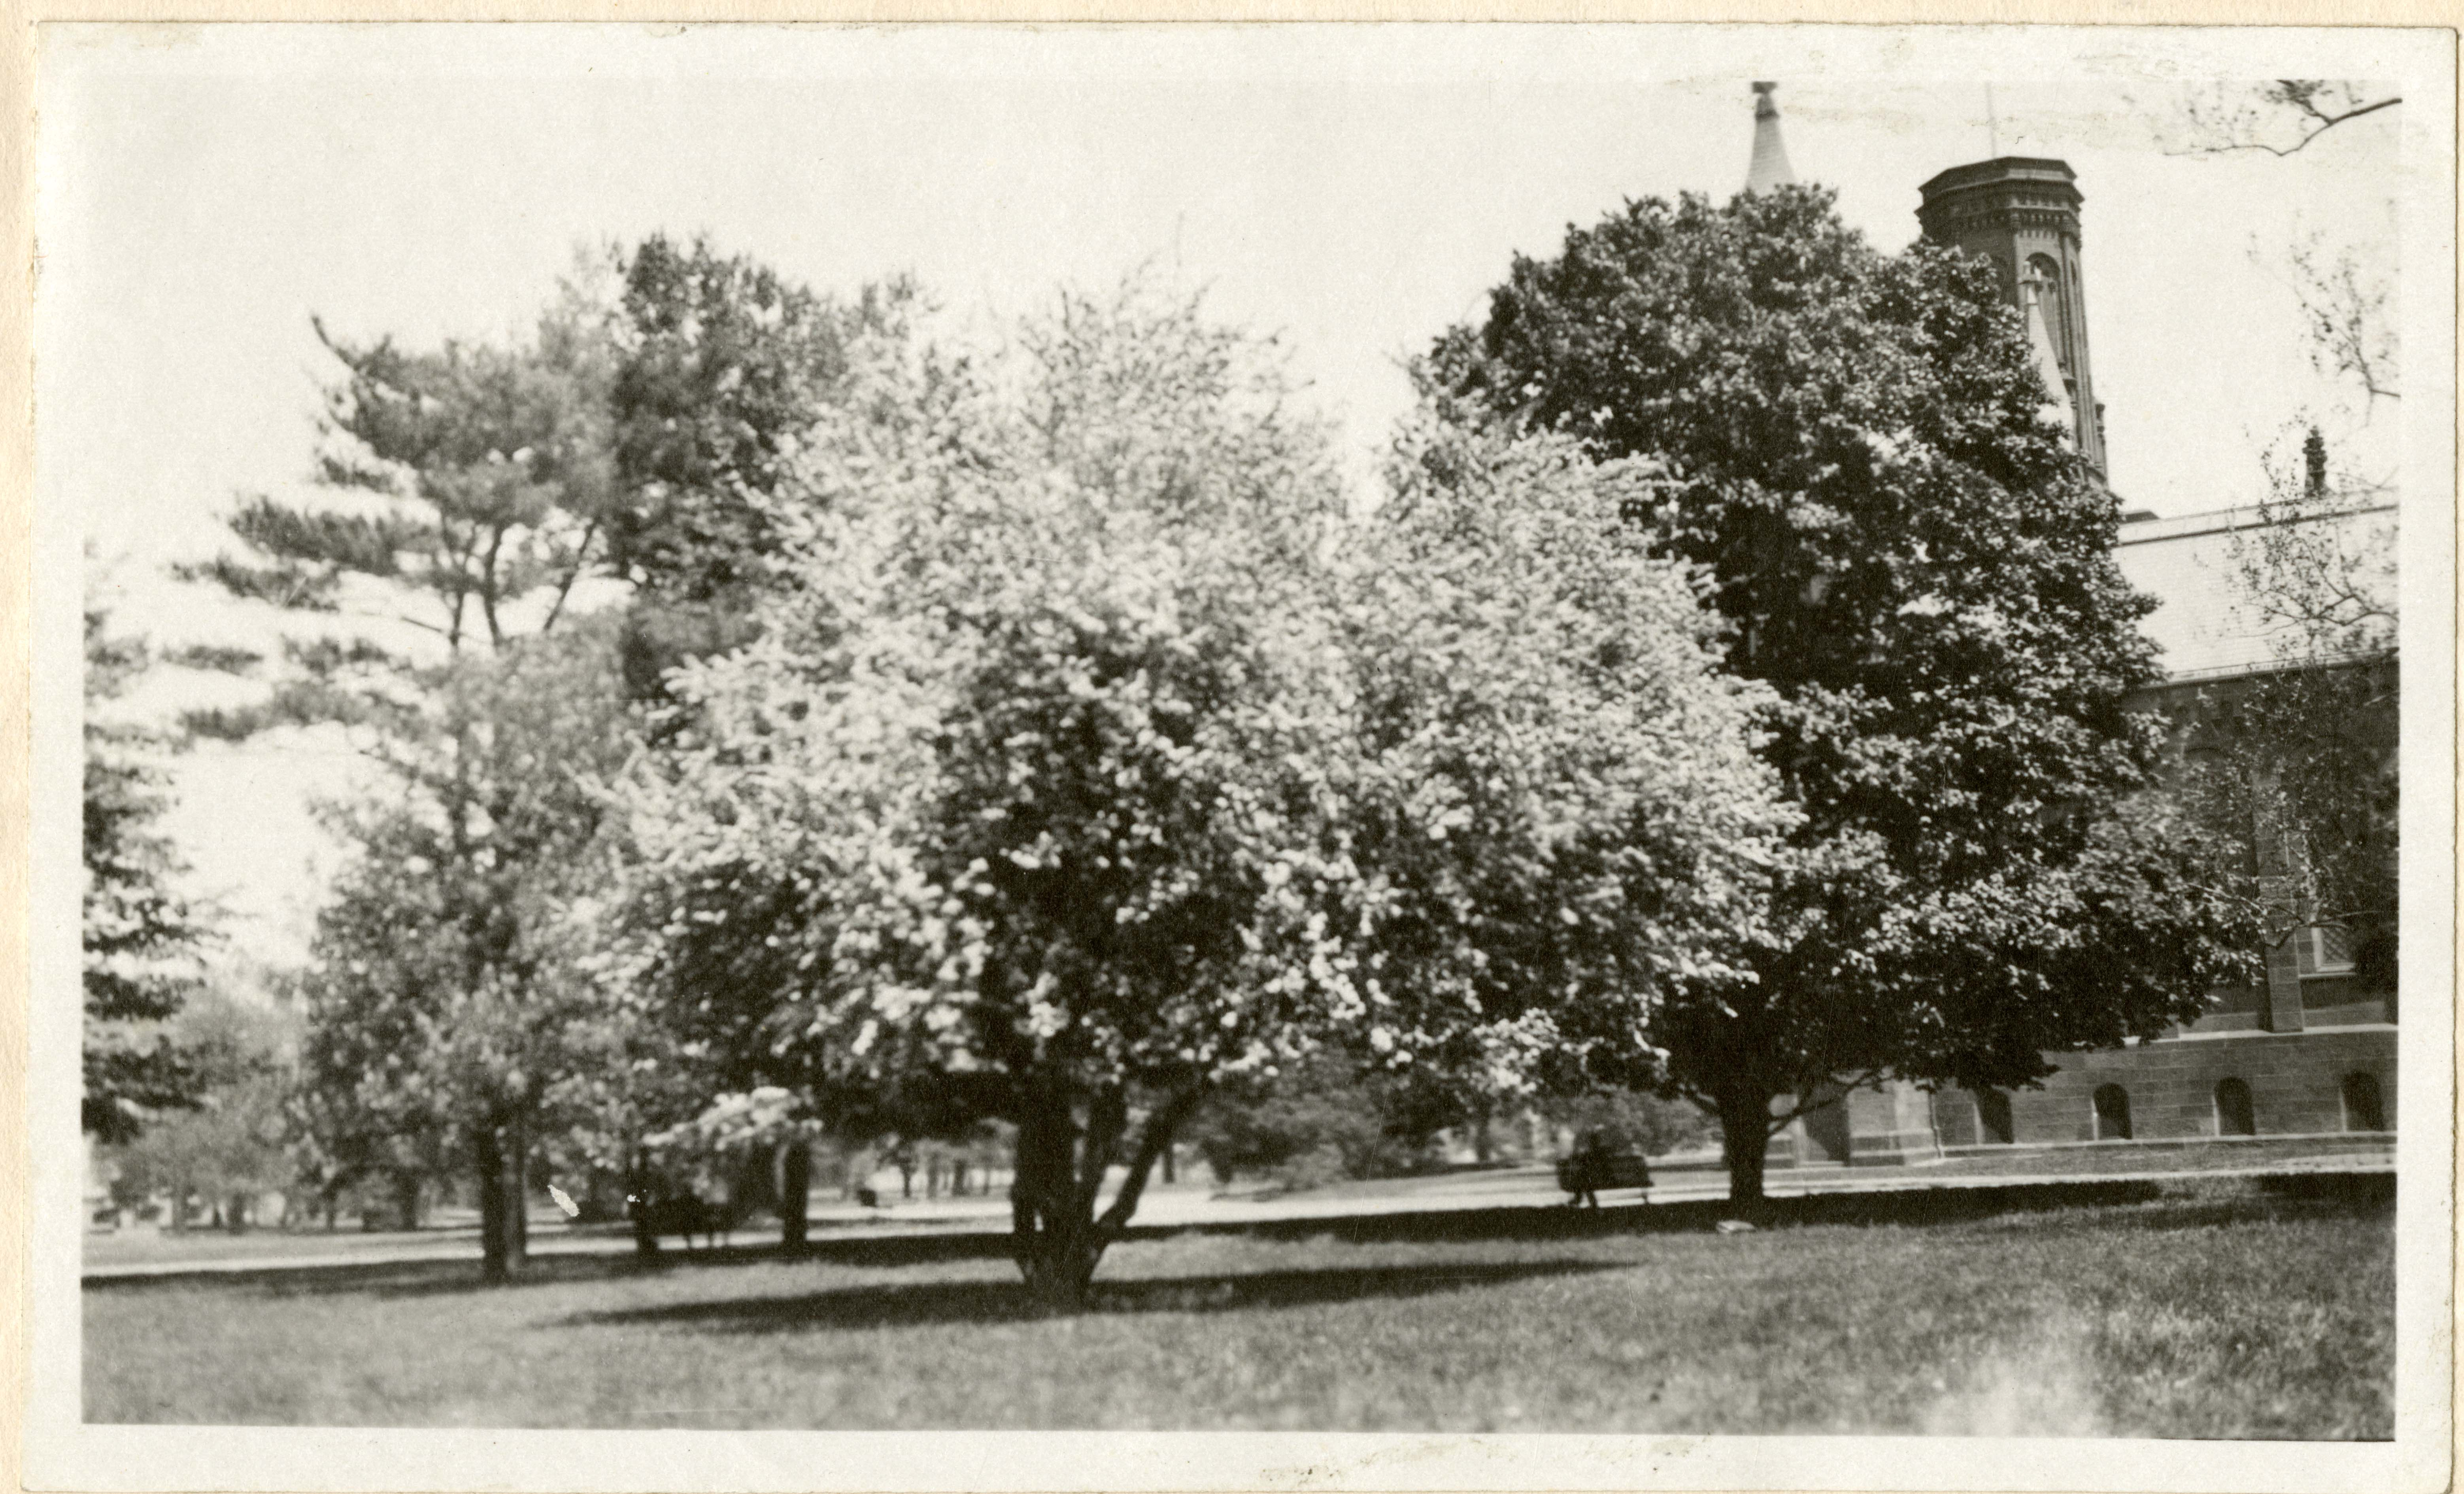 Trees and Flowers with the Smithsonian Castle in the background